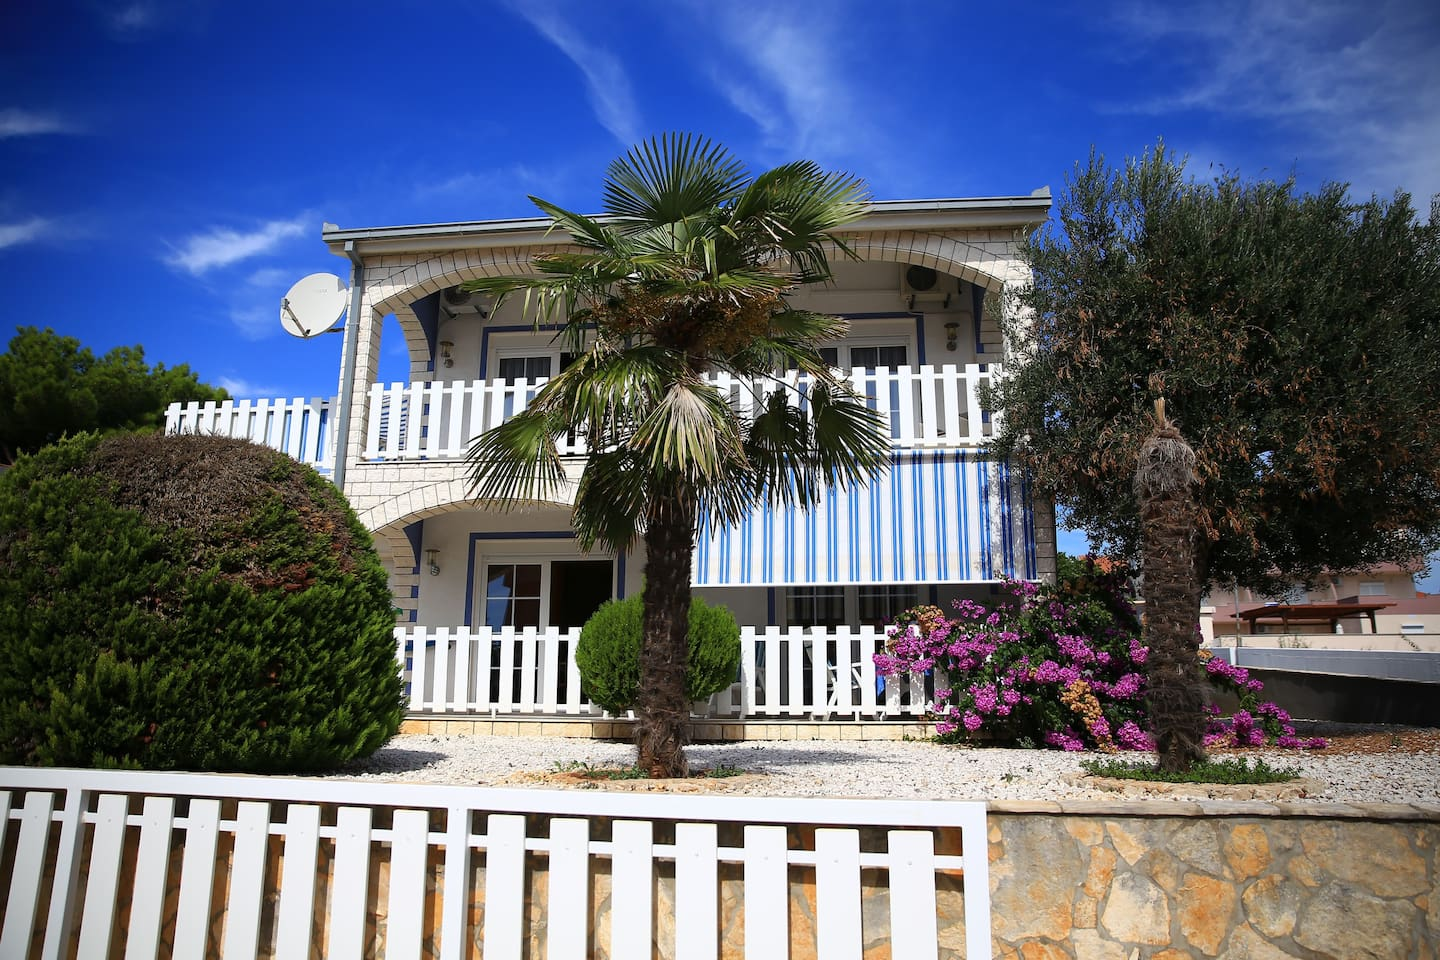 Villa Limun, fully air-conditioned home with roller shutters on all windows